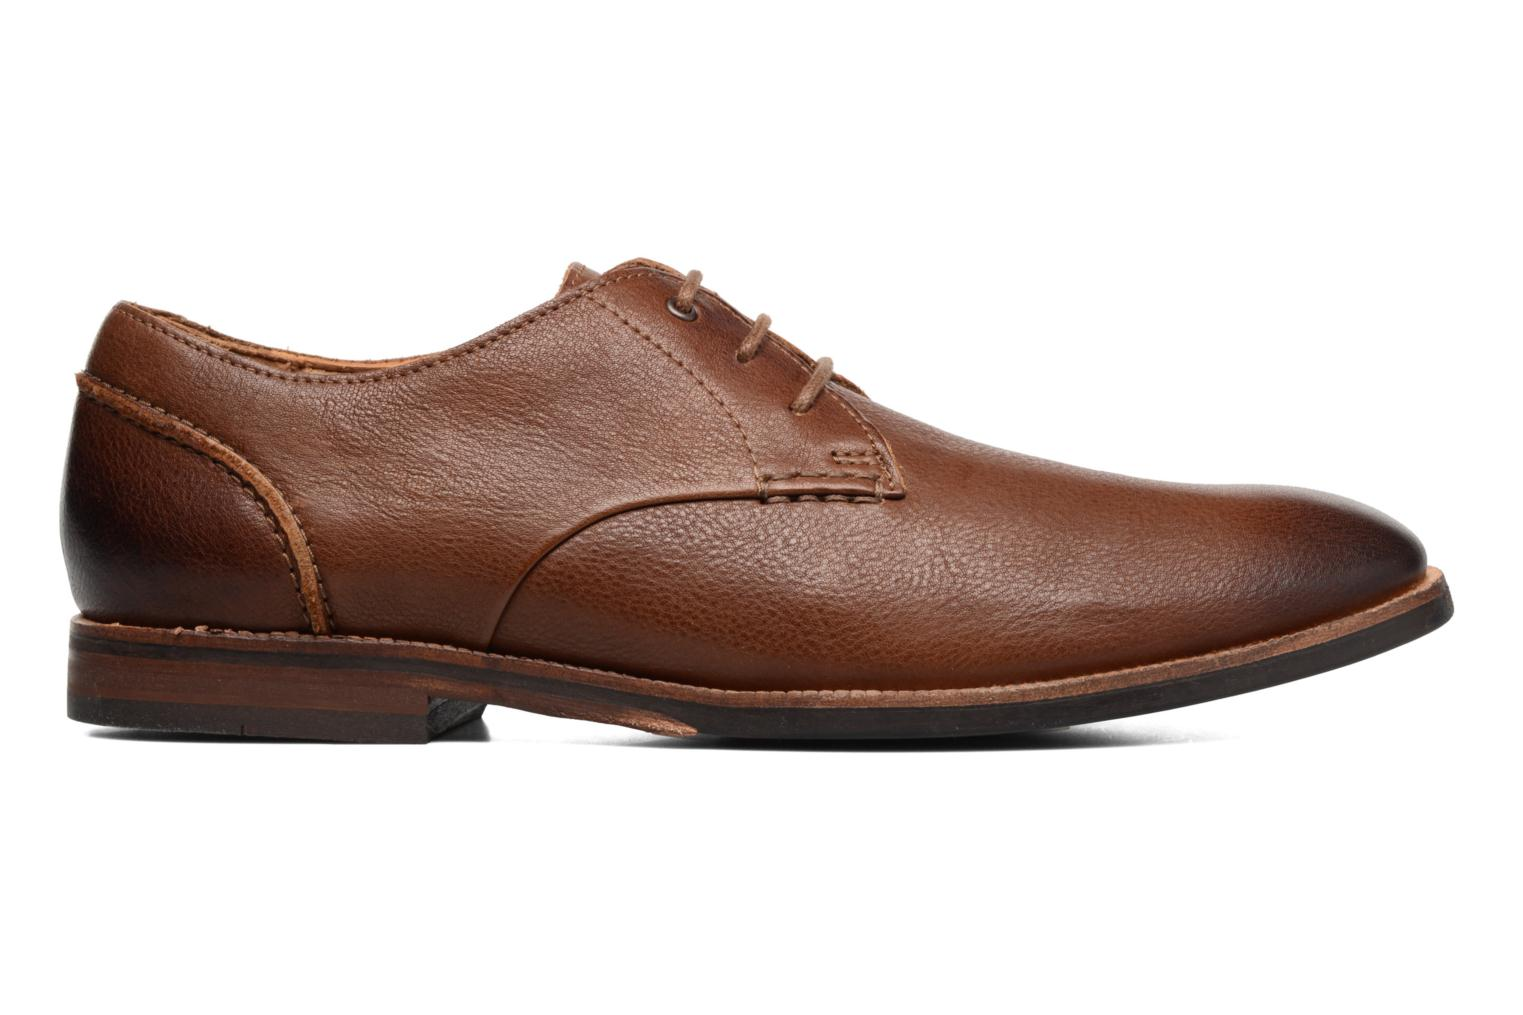 Broyd Walk Tan Leather